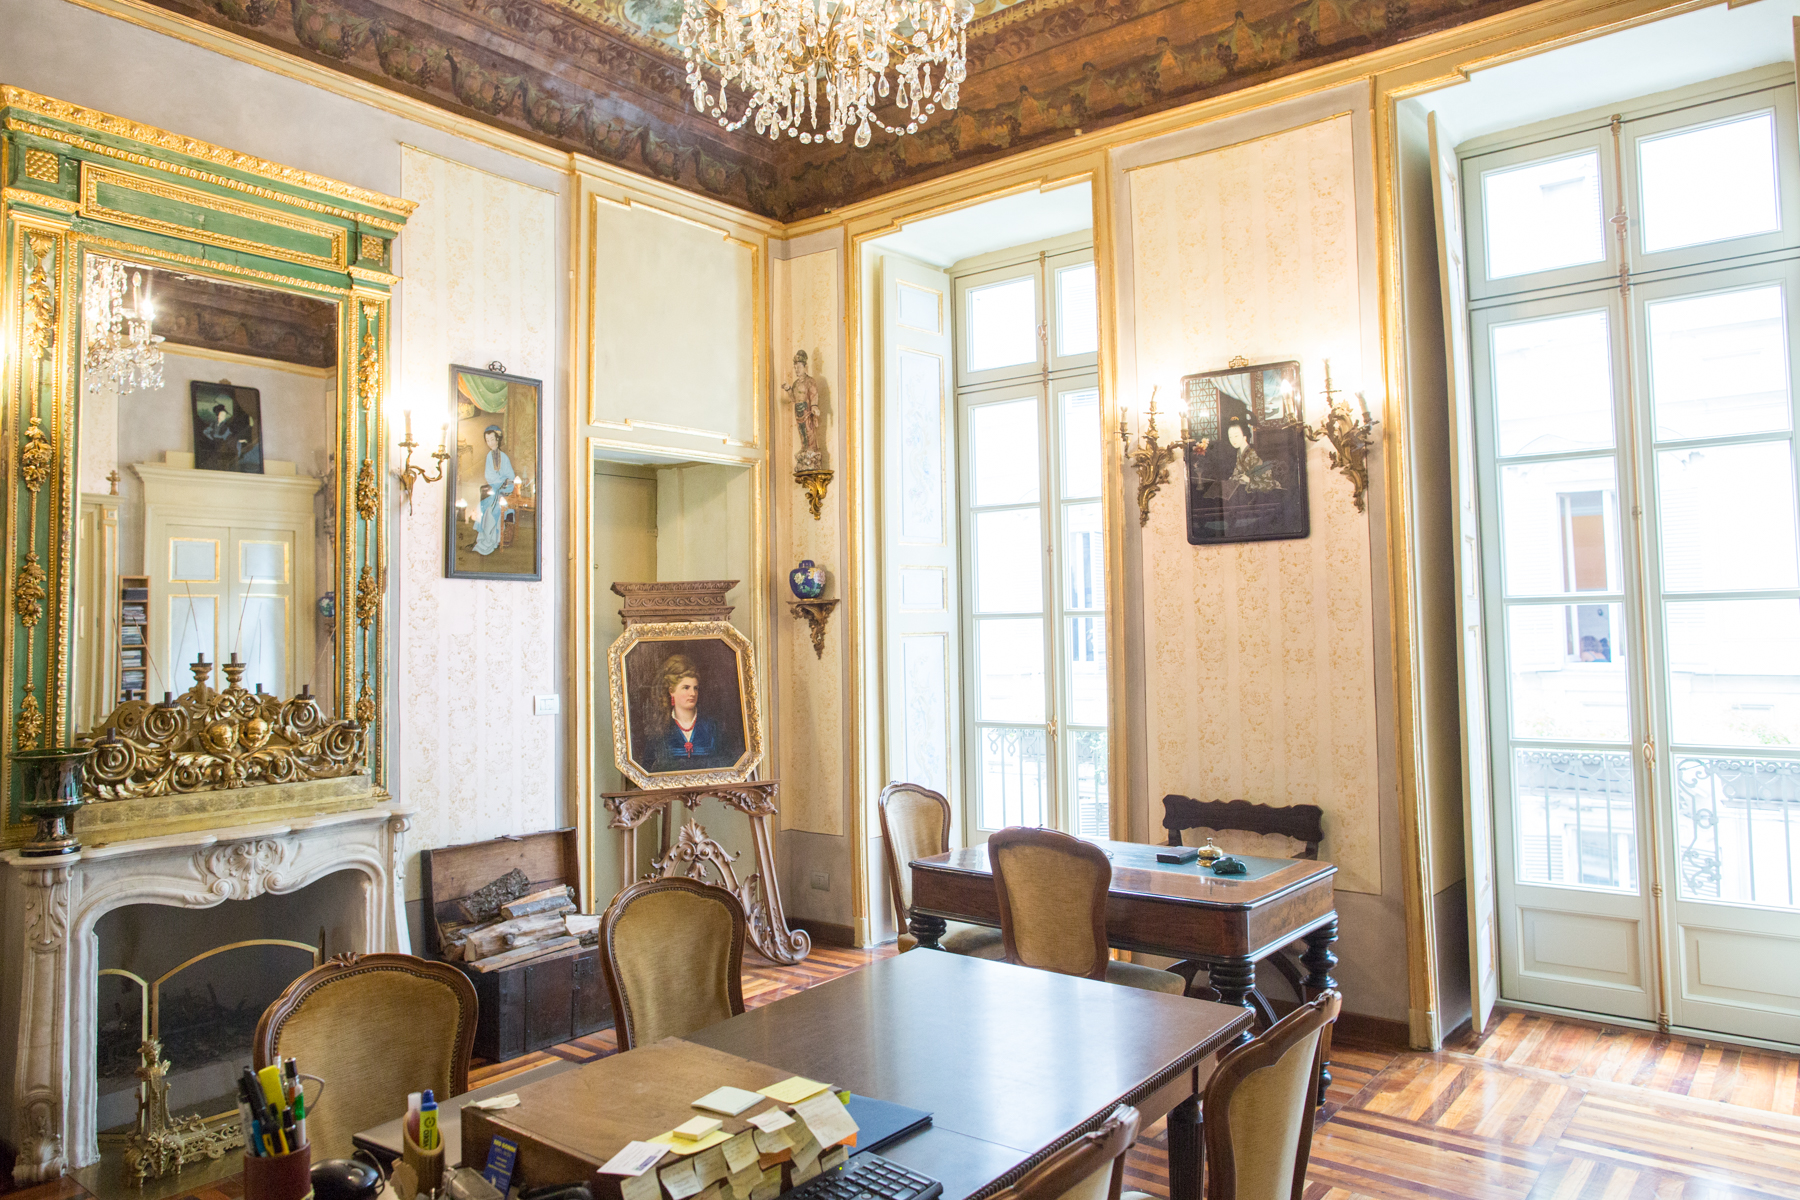 Additional photo for property listing at Elegant and fascinating apartment in the historical center of Turin Via Conte Verde 1 Torino, Turin 10122 Italien